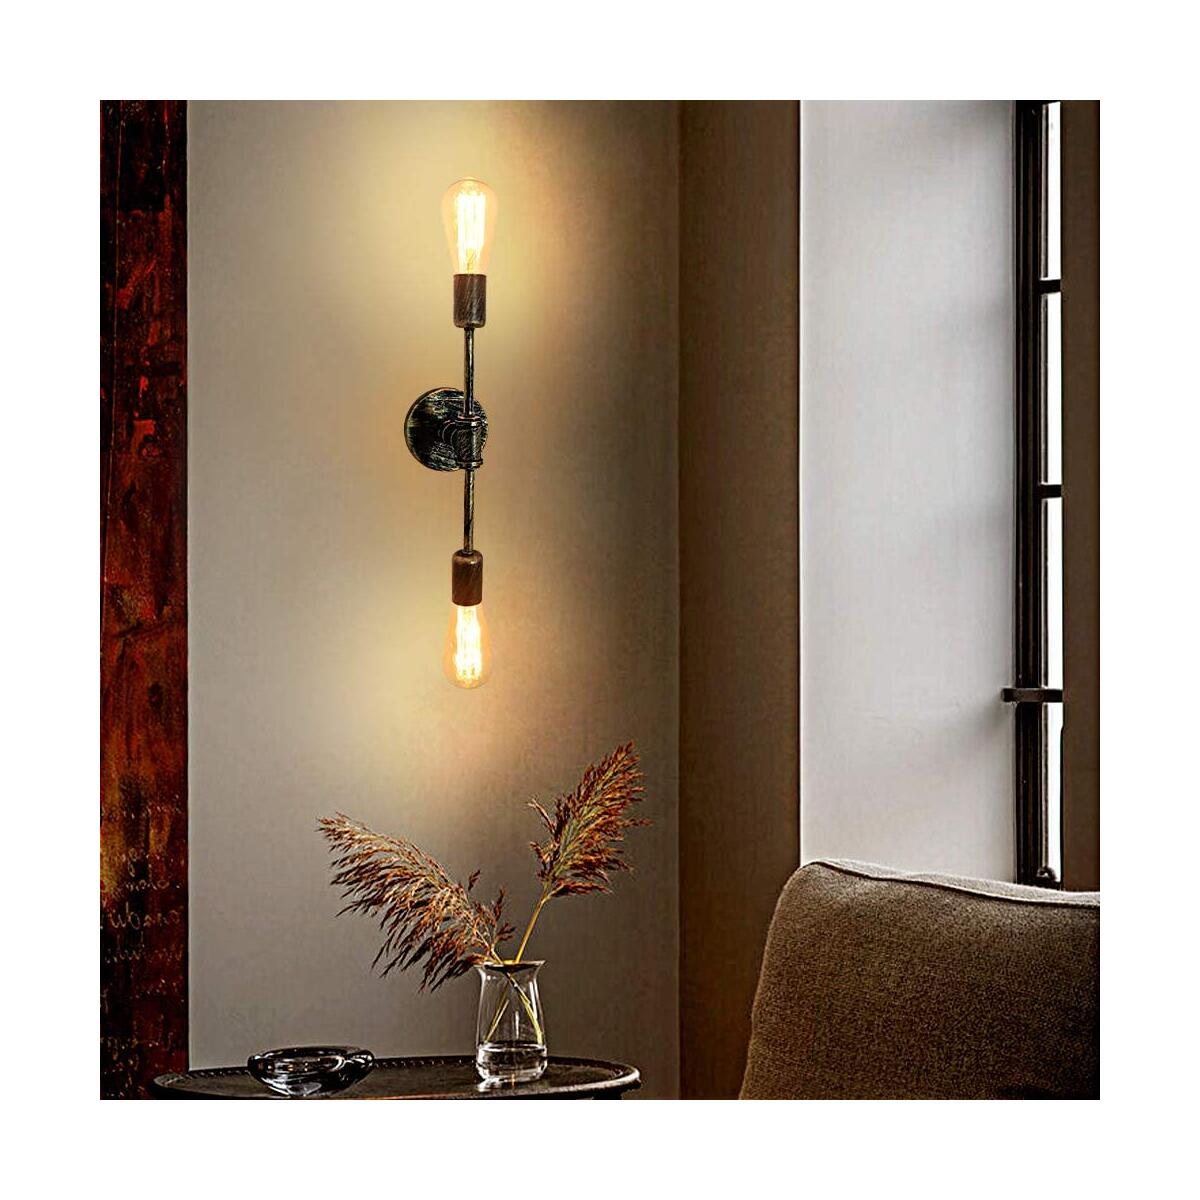 2-Light Wall Sconce Lighting Rustic Gold Bathroom Light Fixtures, Vintage Mid Century Wall Lamp Industrial Steampunk Pipe Sconce Light, Double Vanity Light for Bathroom Mirror Bedroom Hallway Entryway